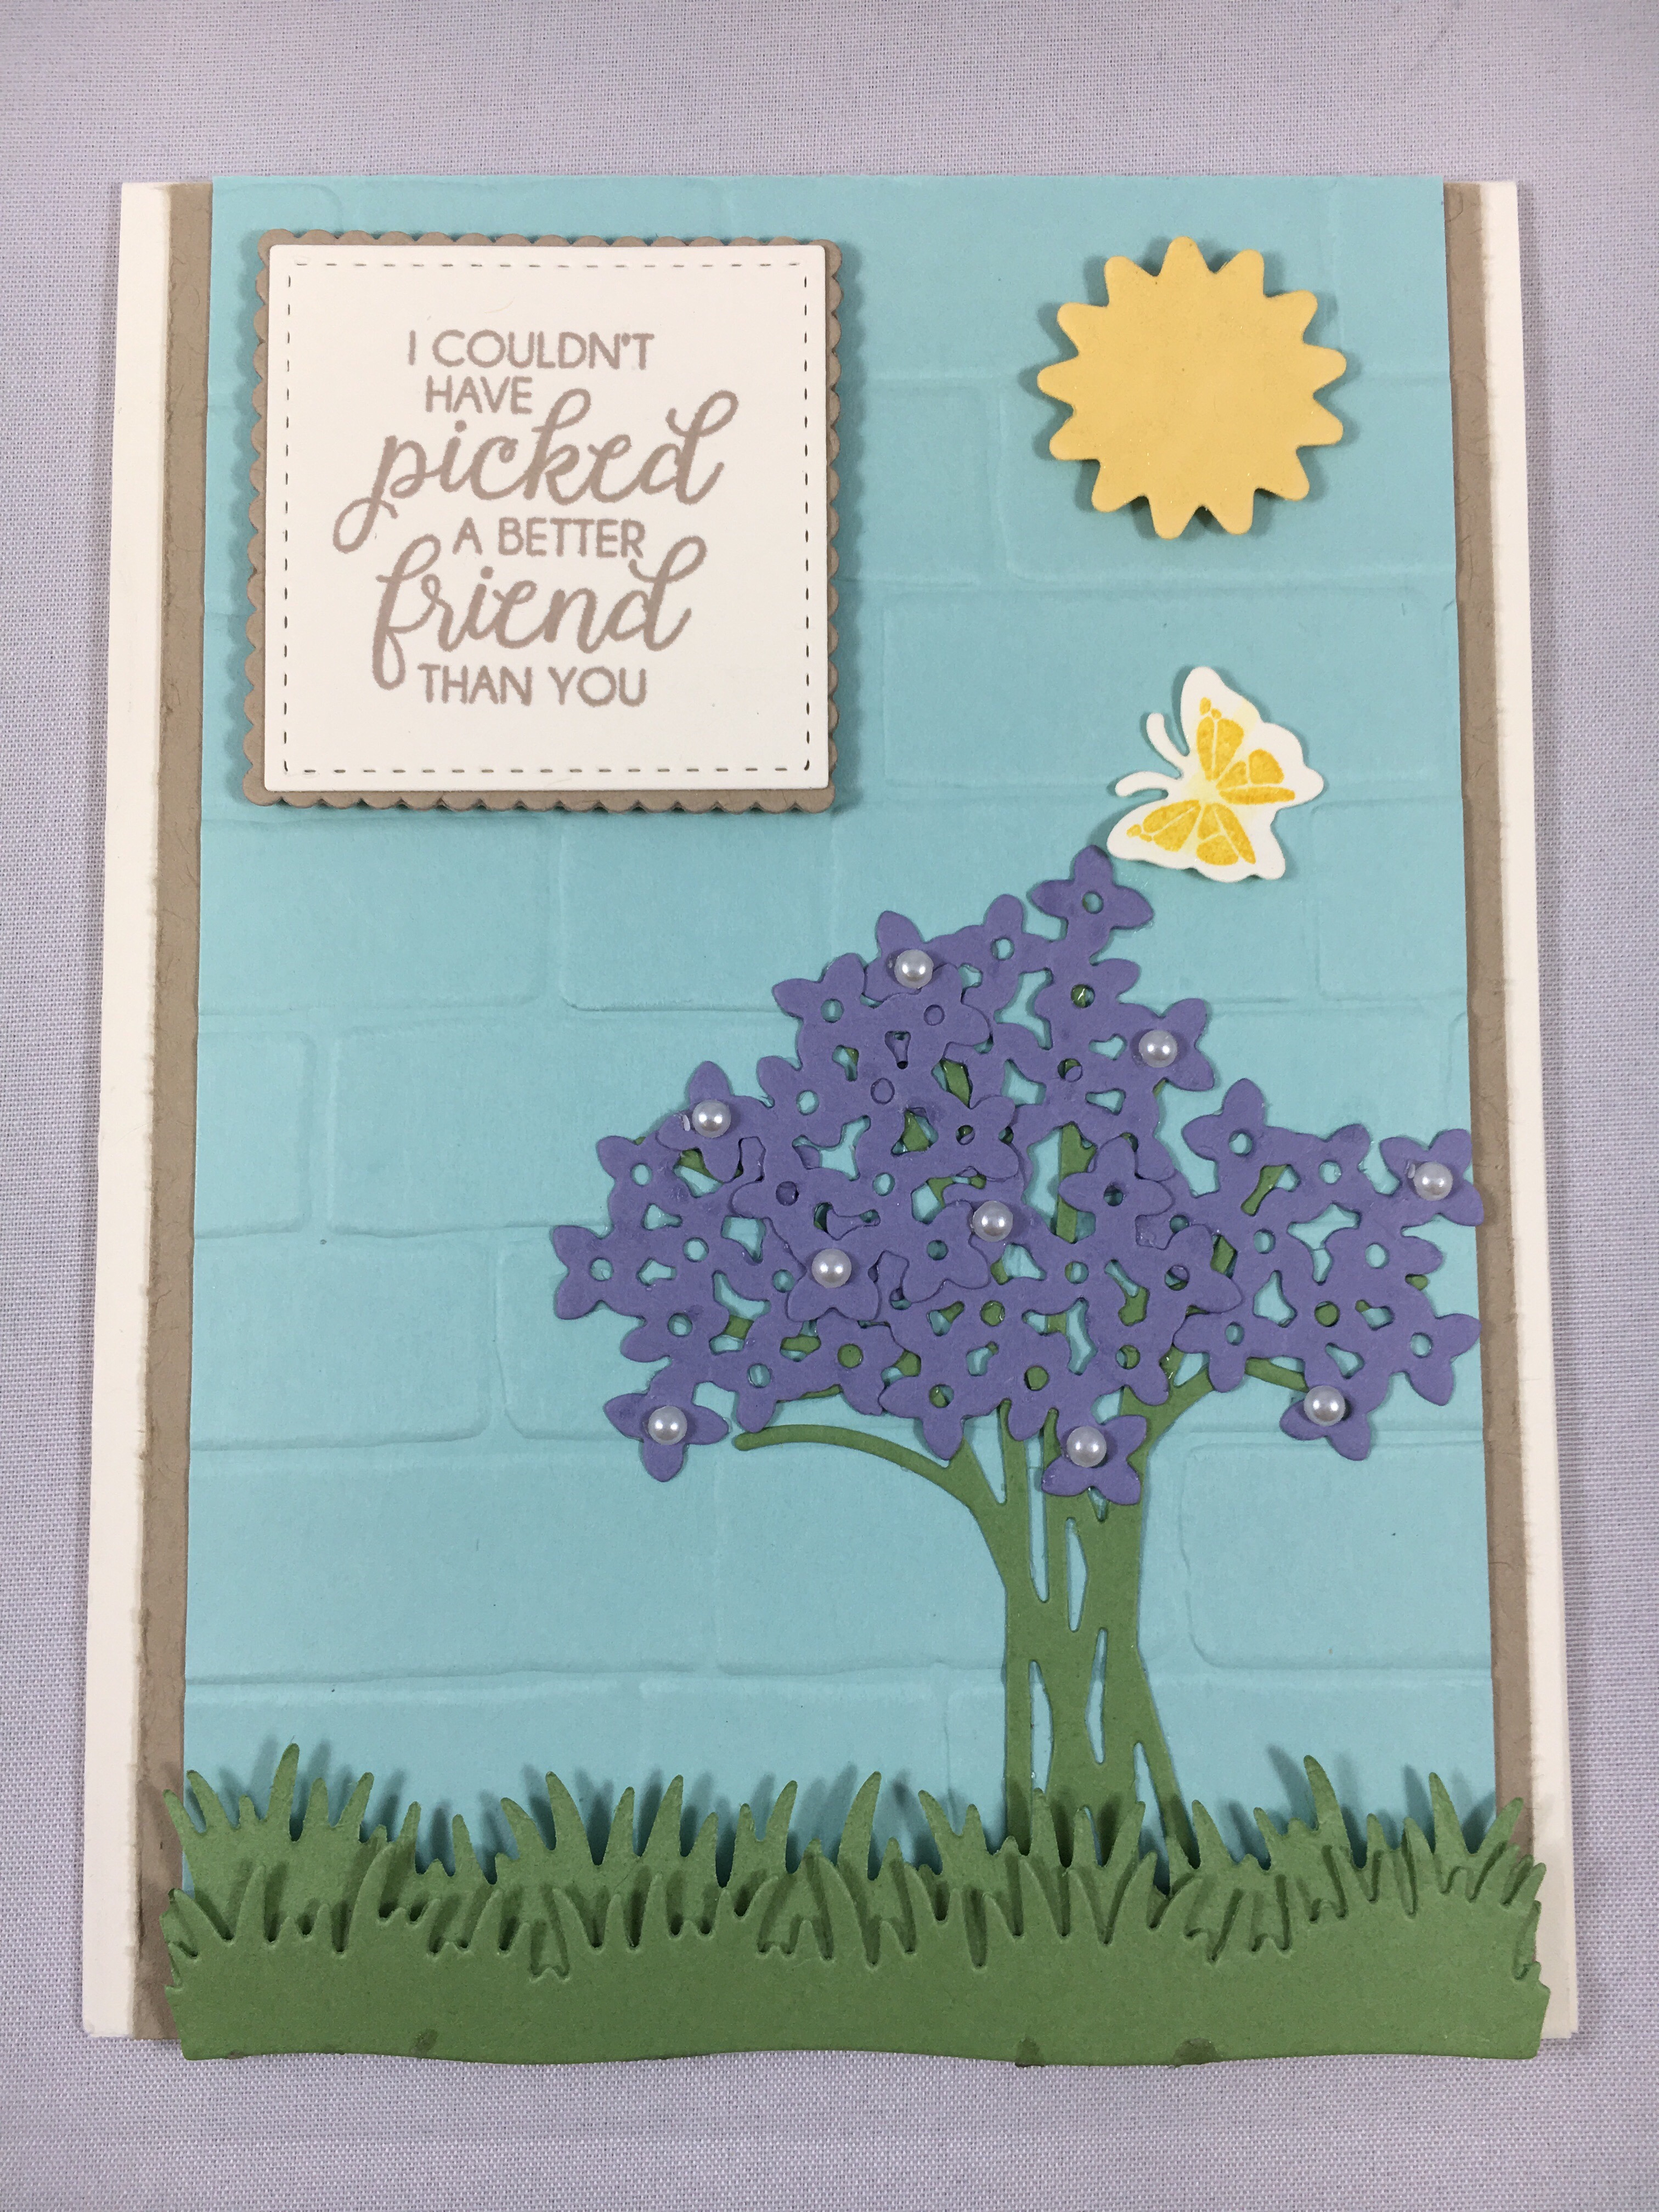 Stampin Up Beautiful Bouquet friend card idea - For inspiration, ordering and more visit www.juststampin.com Jeanie Stark StampinUp